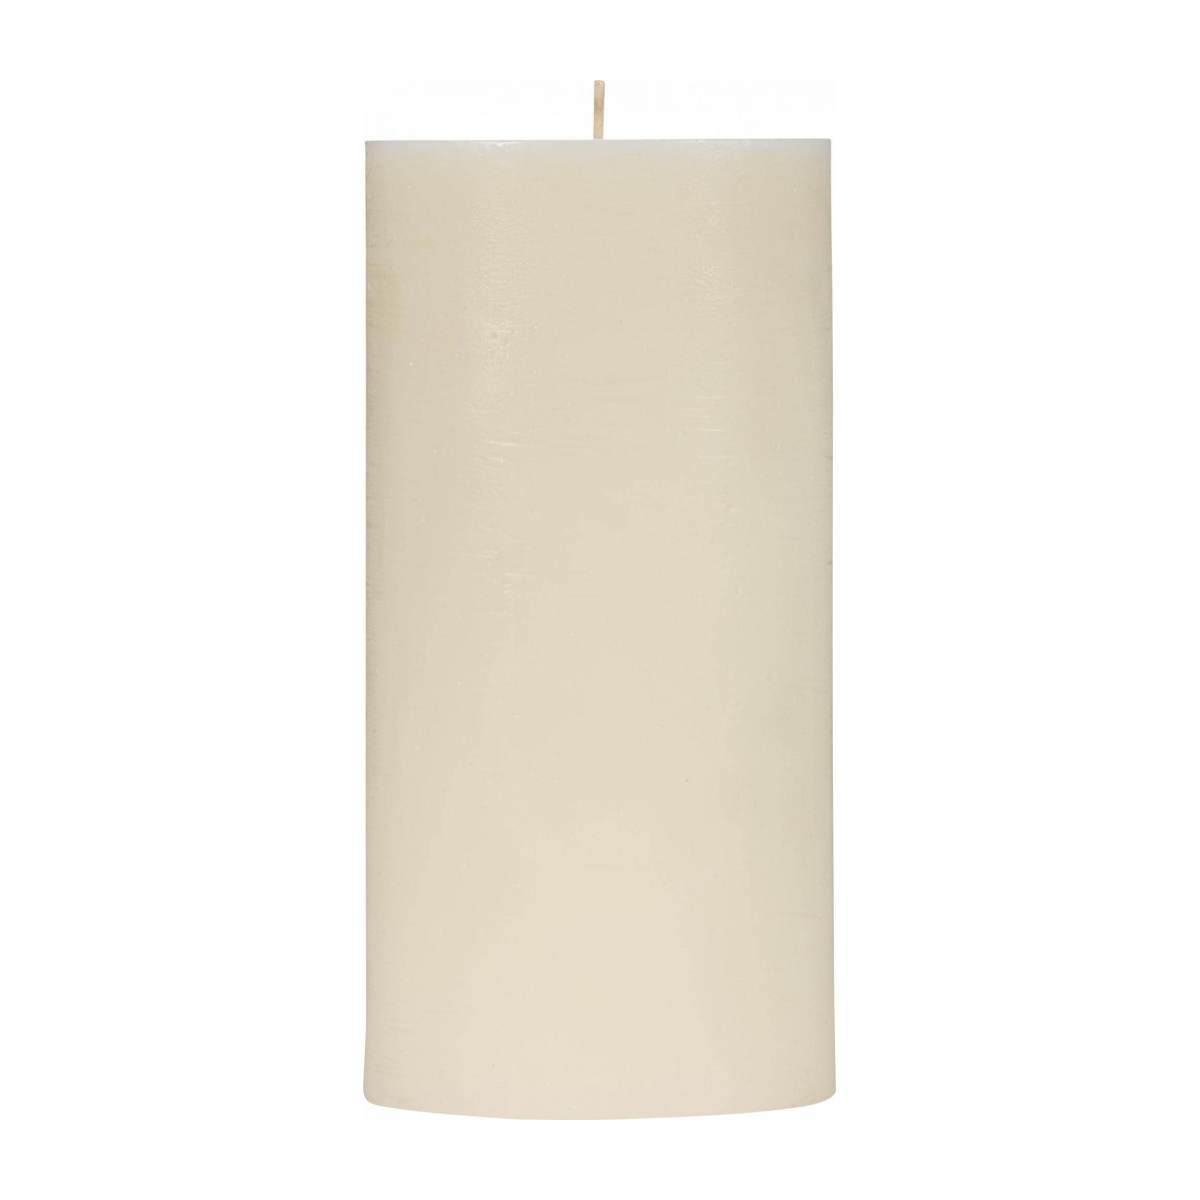 Bougie cylindre 20cm blanche n°2